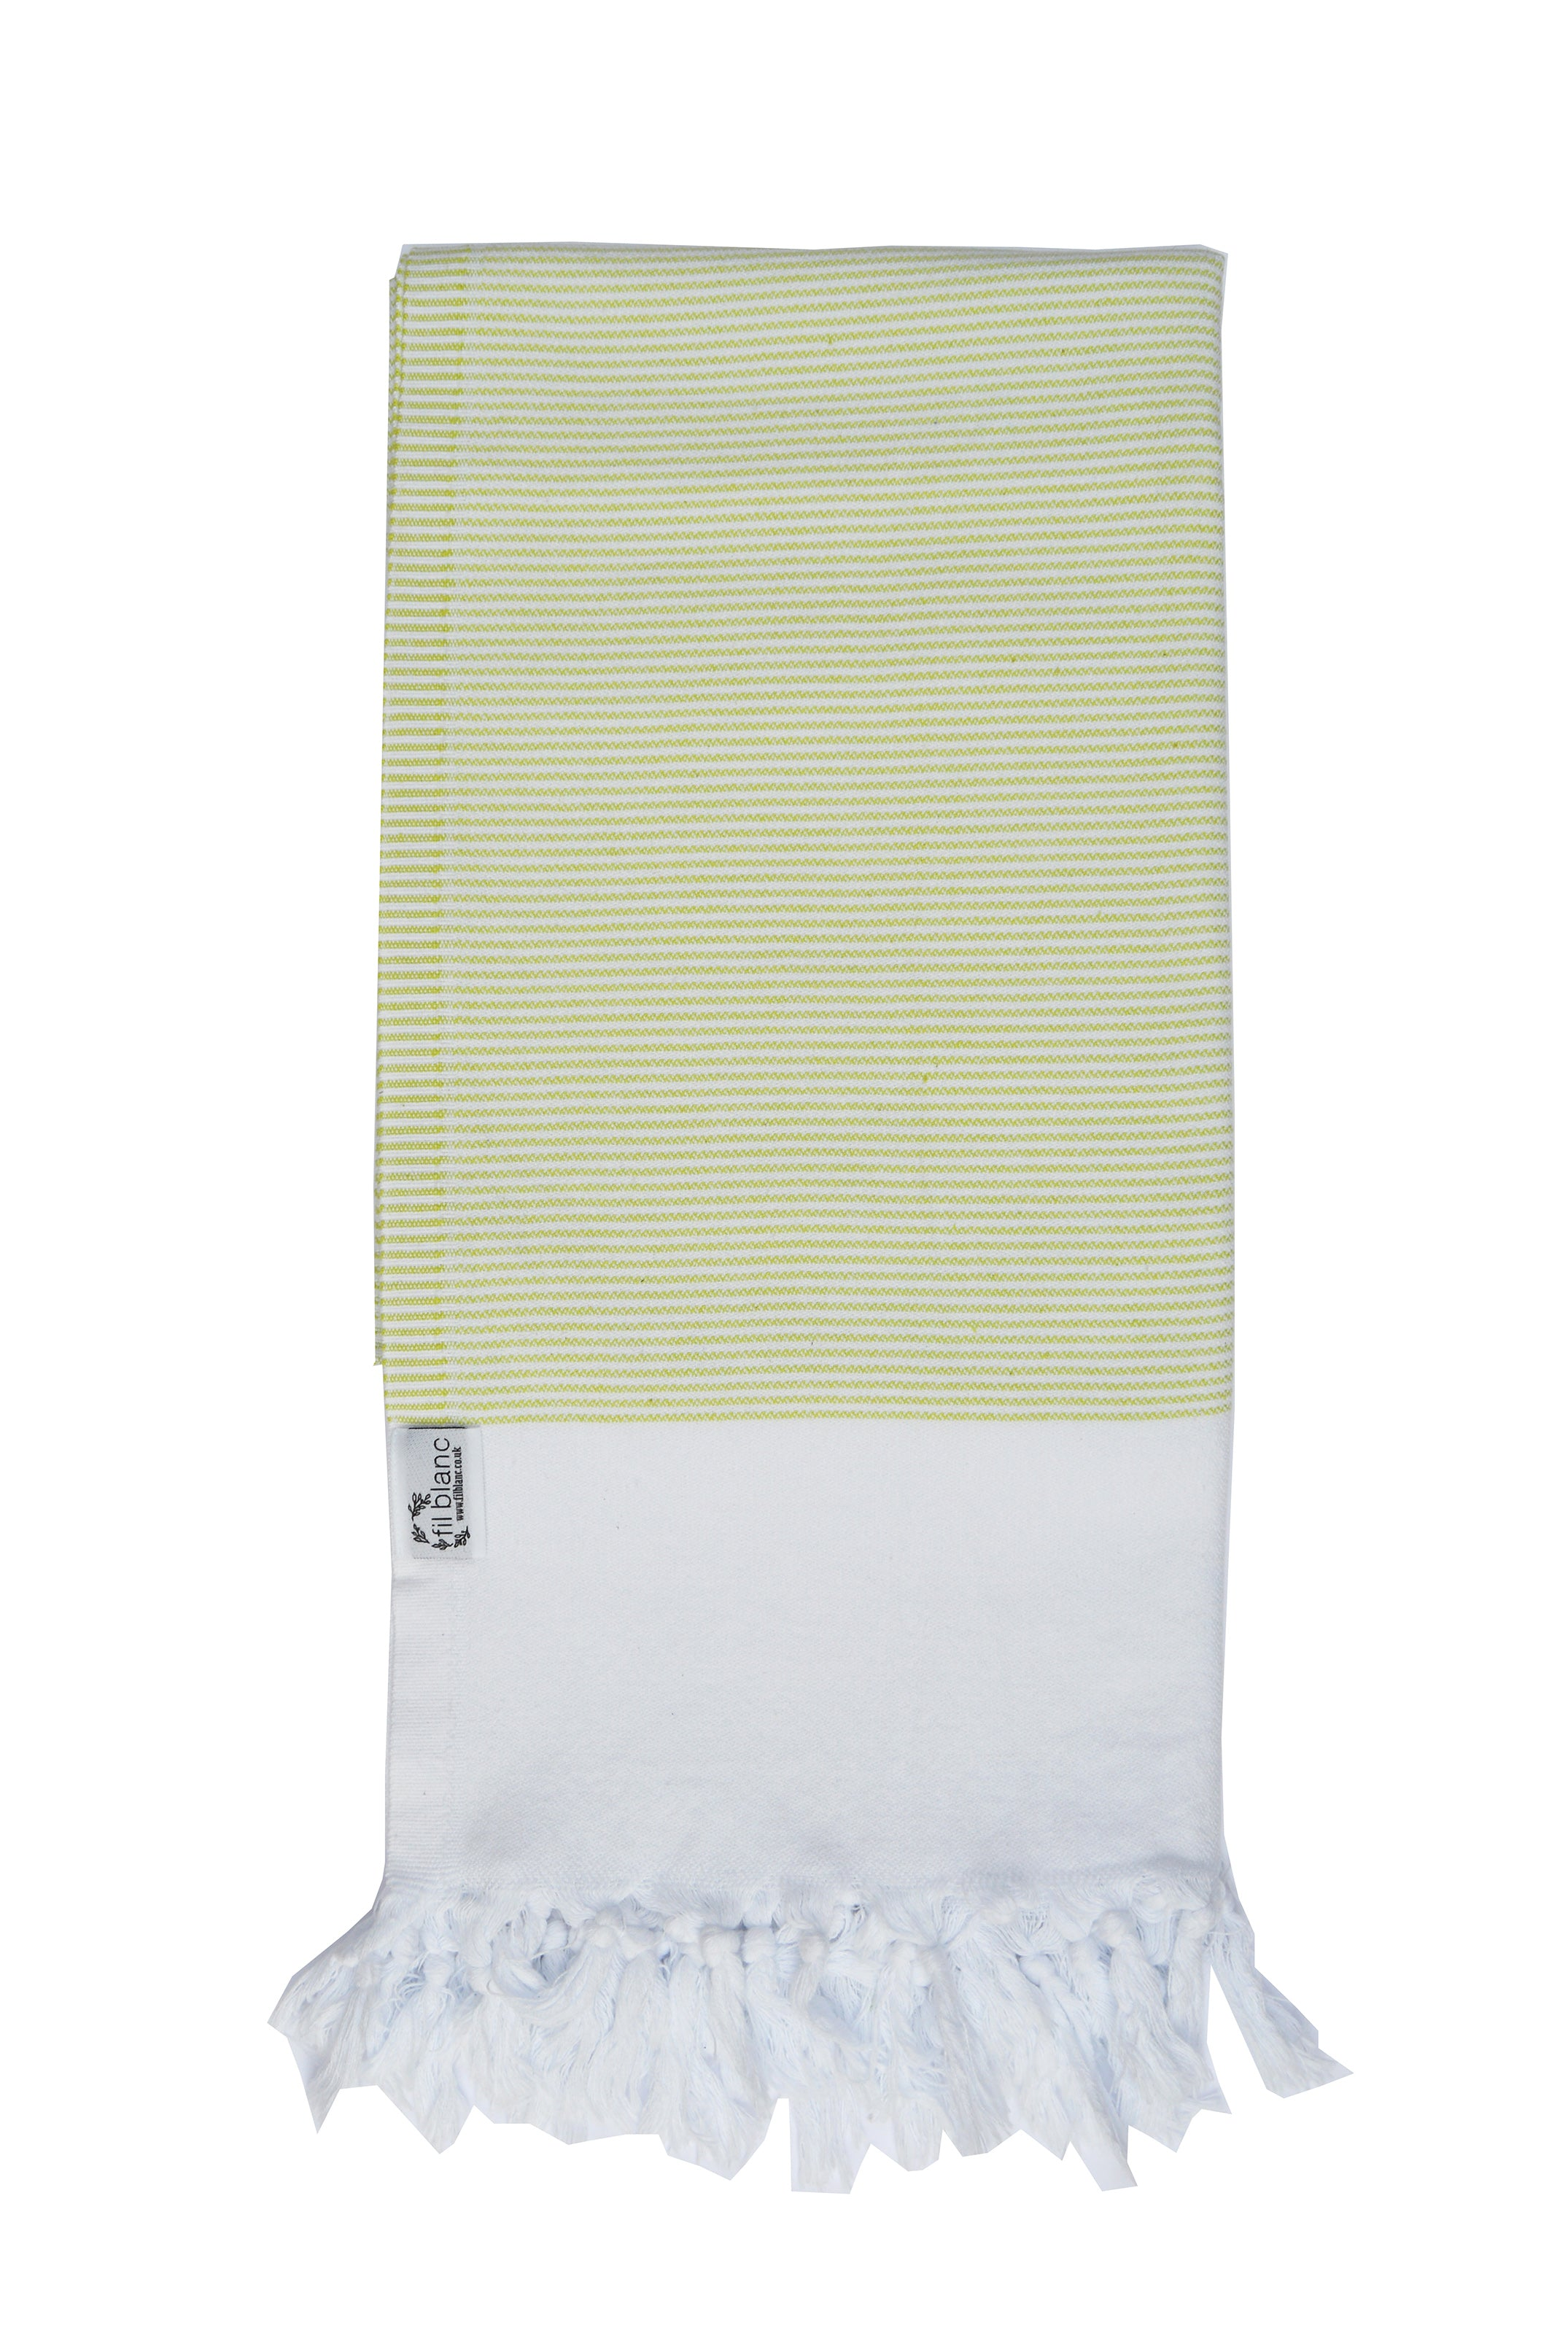 Gummo Hammam Bath Towel - Green